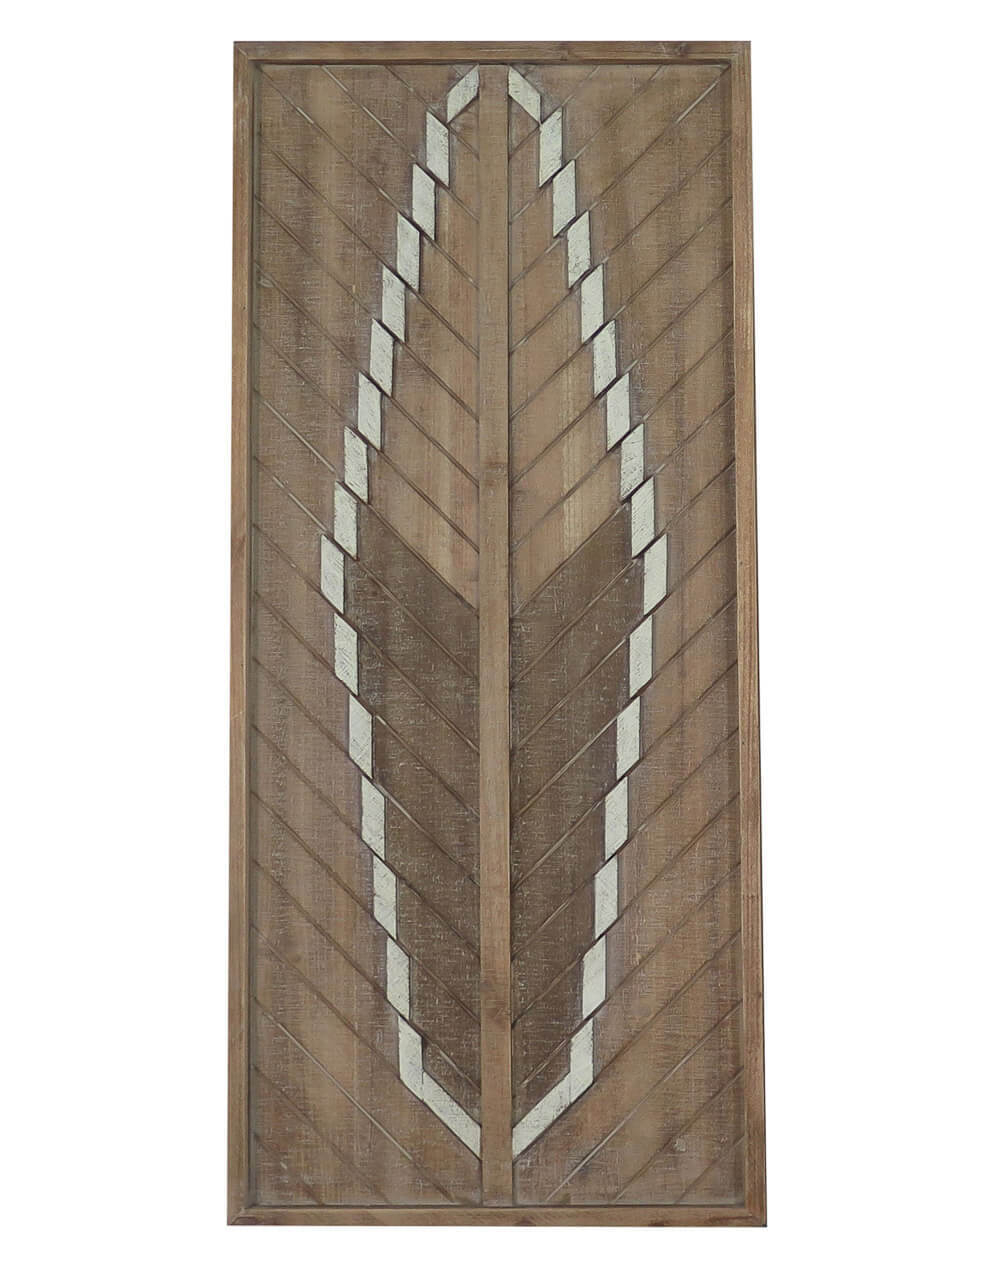 Buy Arrow Feather Detail Large Frame Wall Tribal Art Decor With Regard To Well Known Brown Metal Tribal Arrow Wall Decor (Gallery 17 of 20)